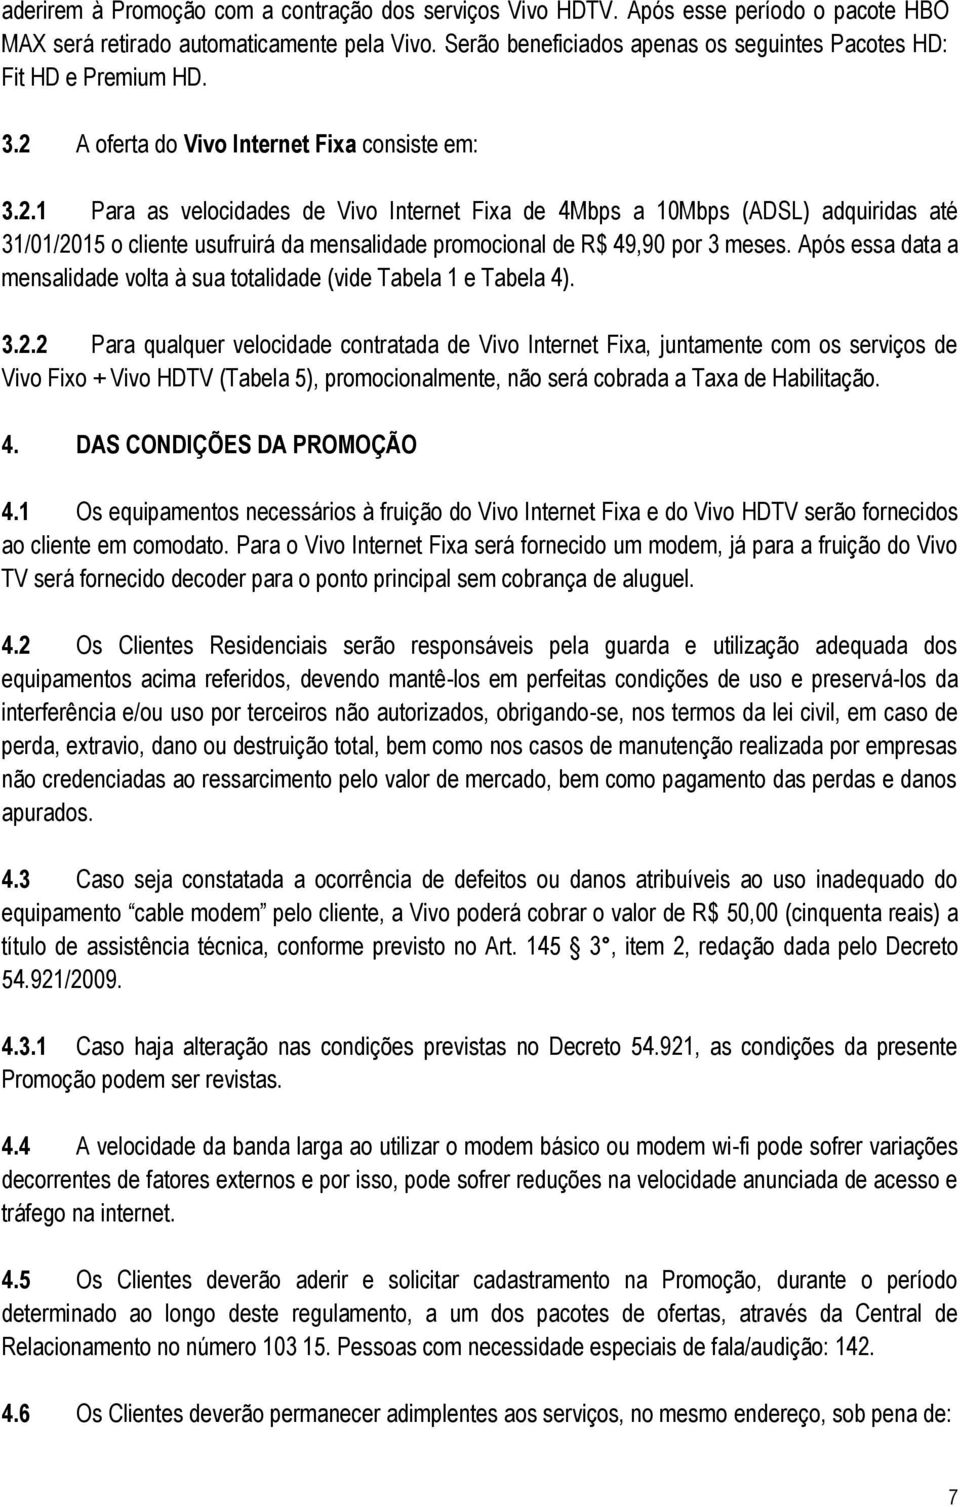 A oferta do Vivo Internet Fixa consiste em: 3.2.